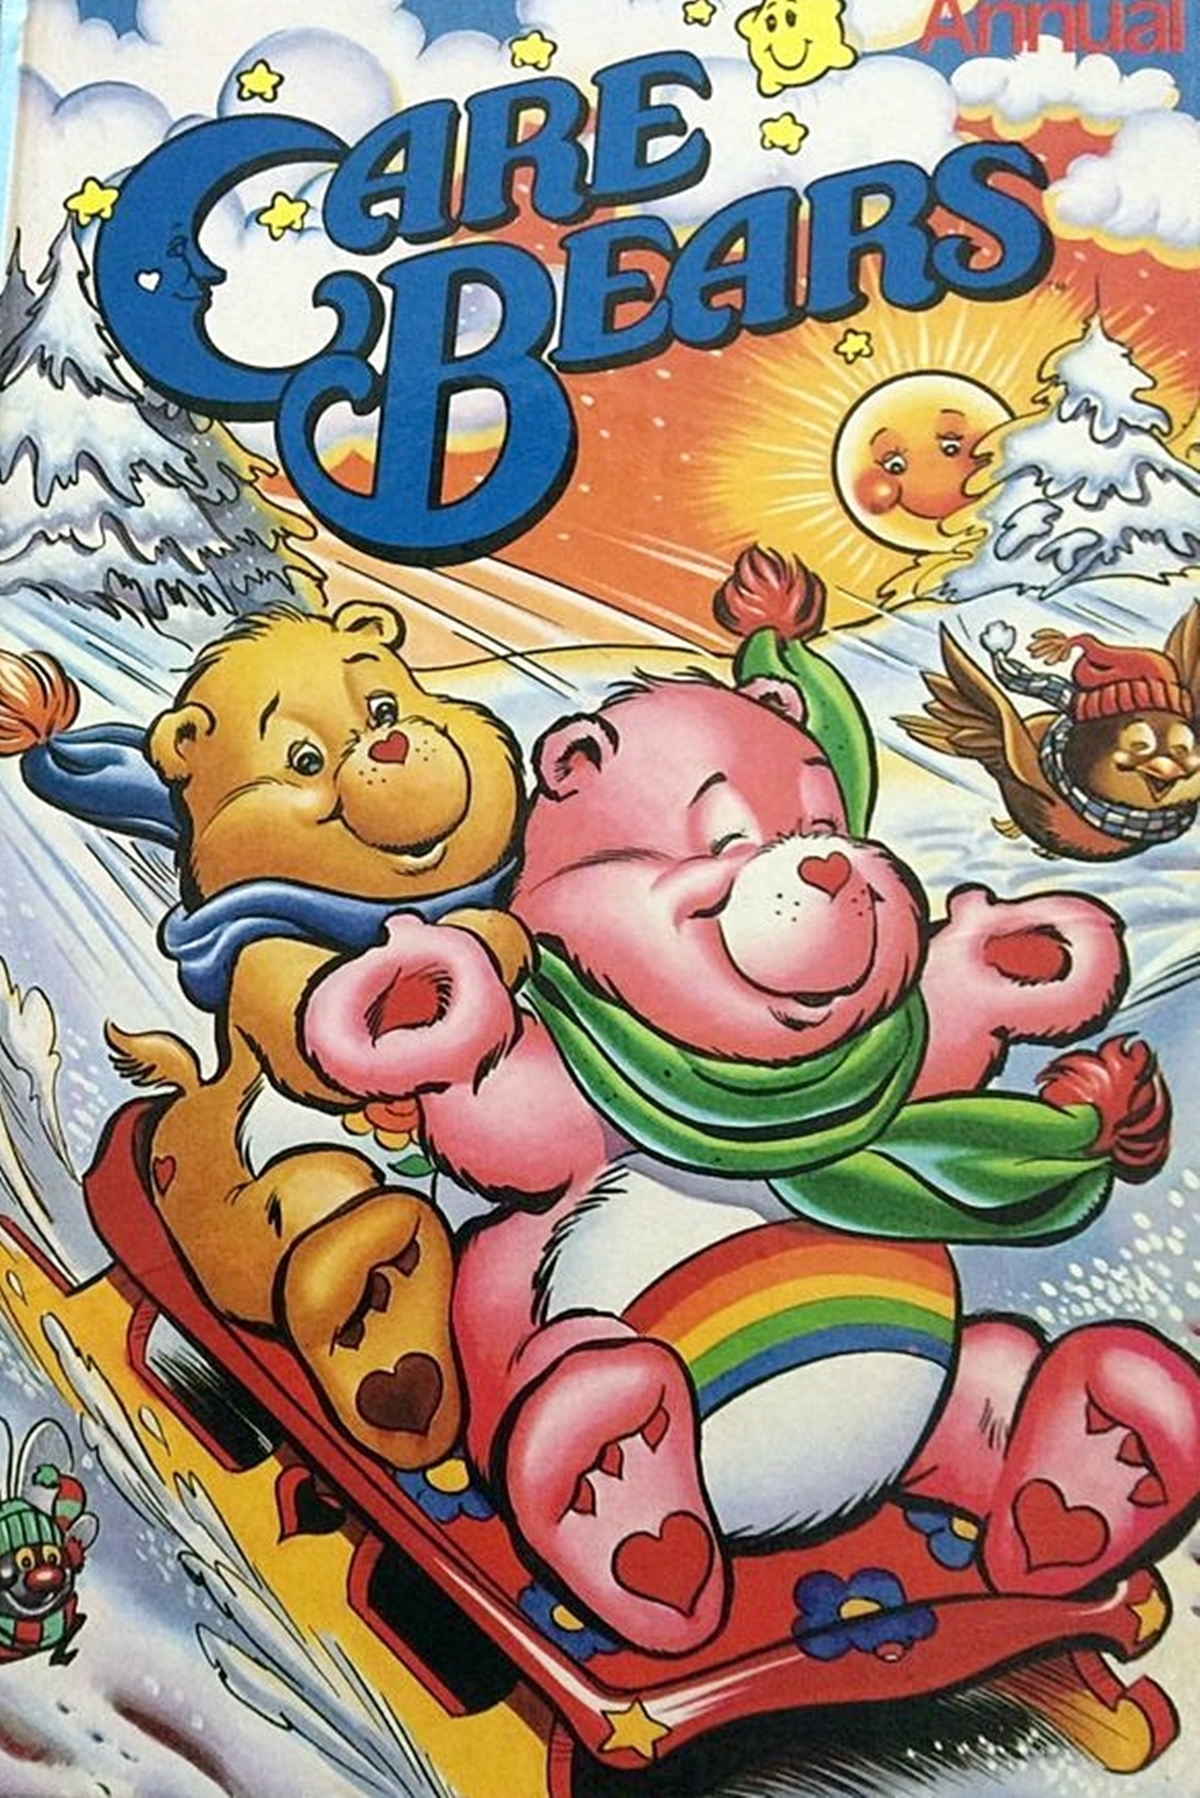 10 6 15 Annuals That Will Take You Back To Your Childhood!